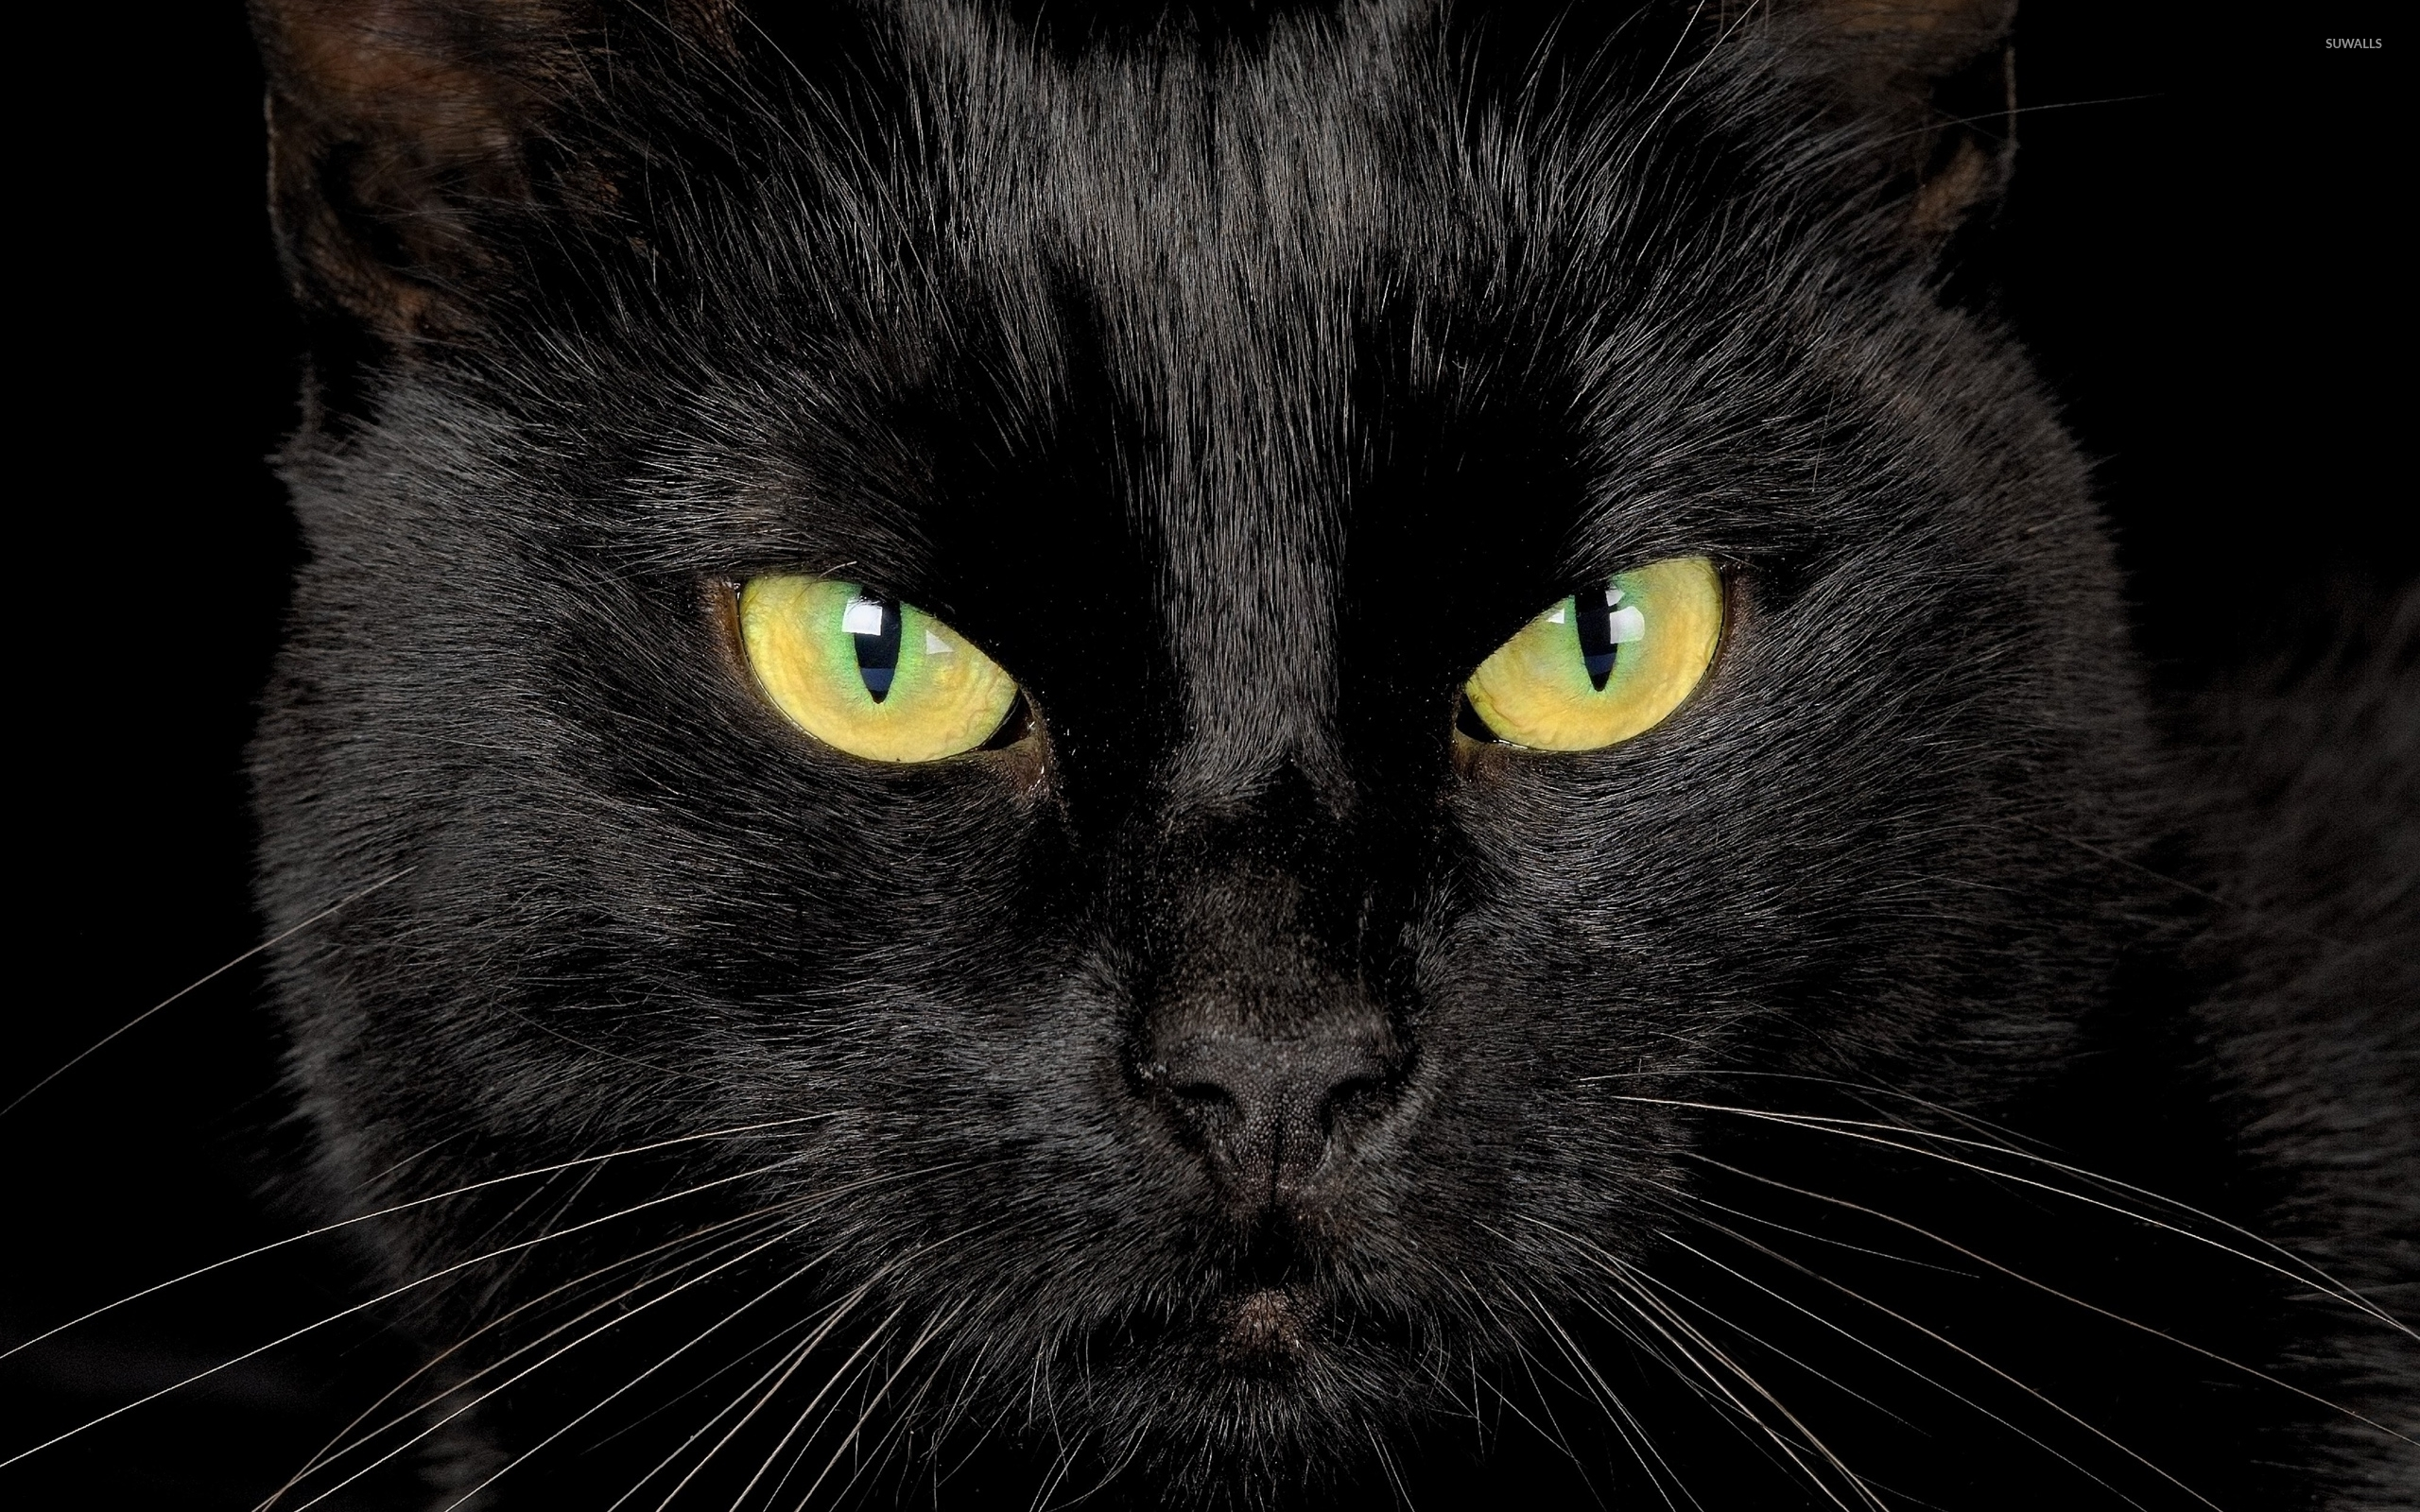 Black cat with yellow eyes wallpaper - Animal wallpapers ...